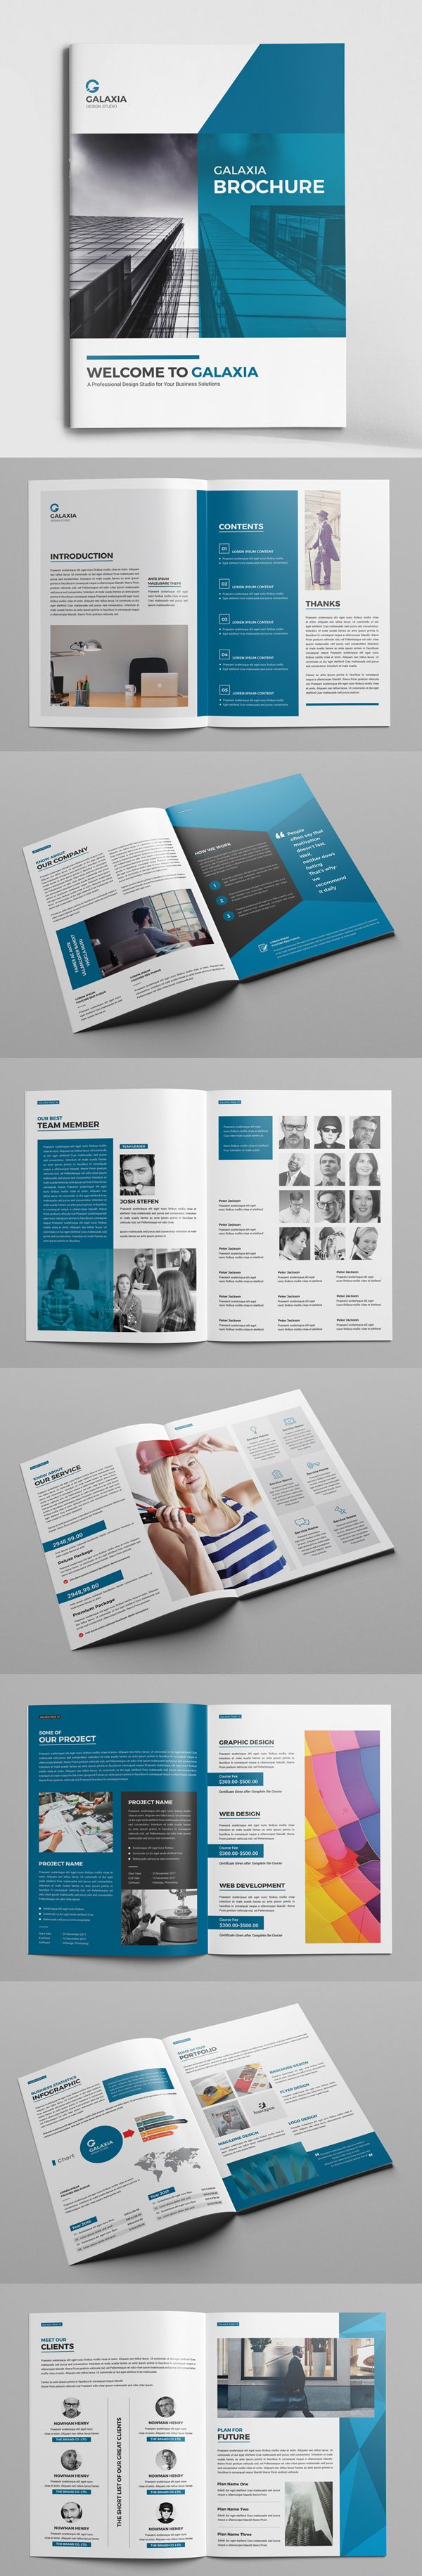 Modern Business Brochure Template | Print Ready Designs | Pinterest ...